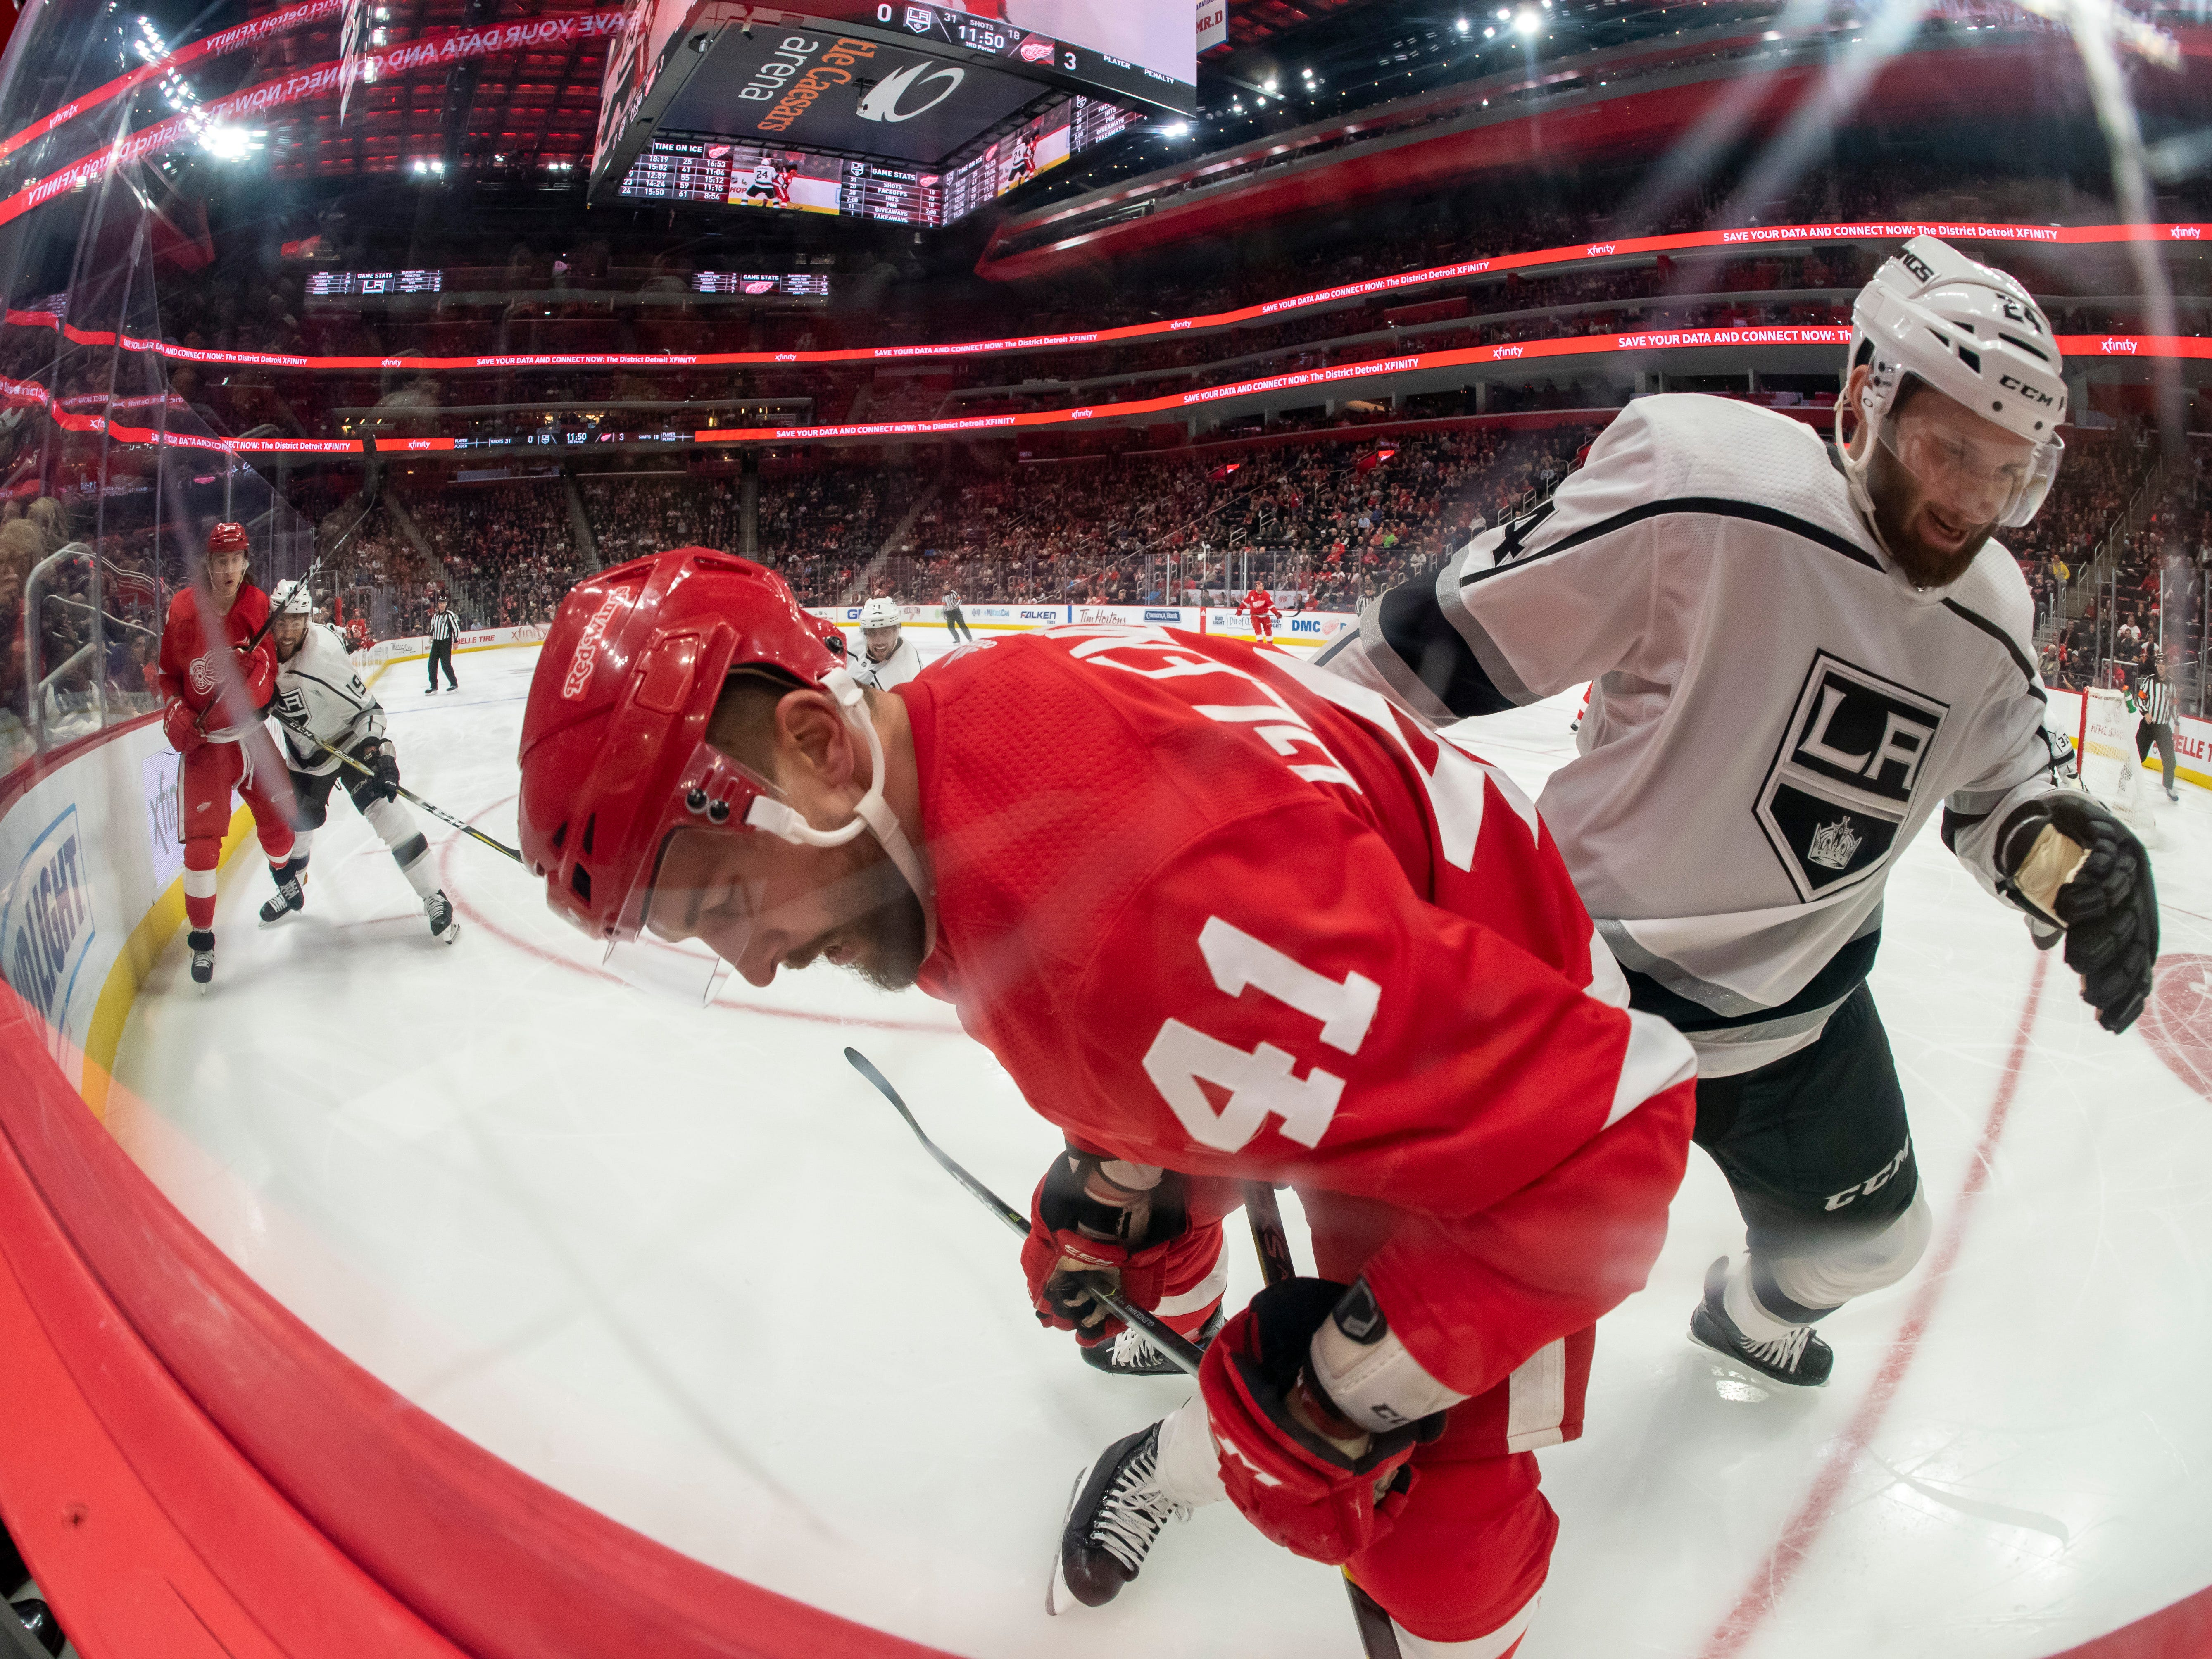 Detroit center Luke Glendening and Los Angeles defenseman Derek Forbort battle for the puck along the boards in the third period.